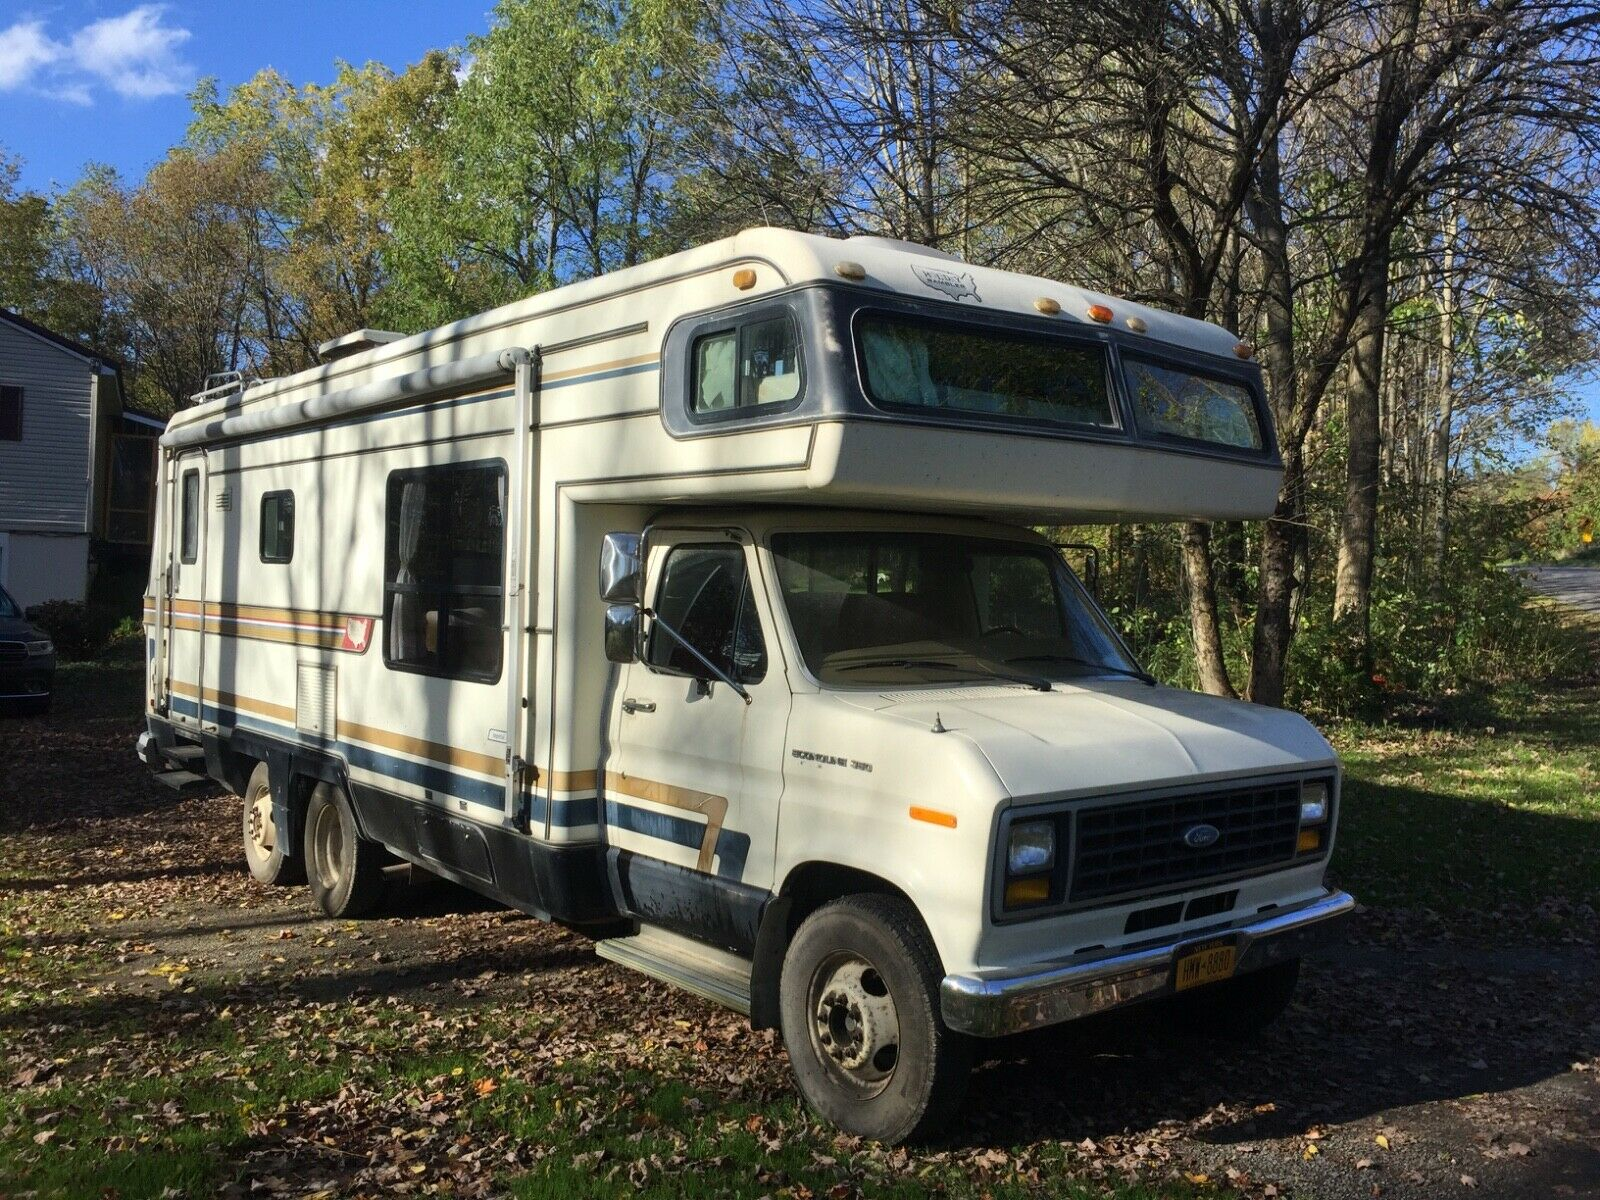 low miles 1984 Ford Holliday Rambler Imperial camper